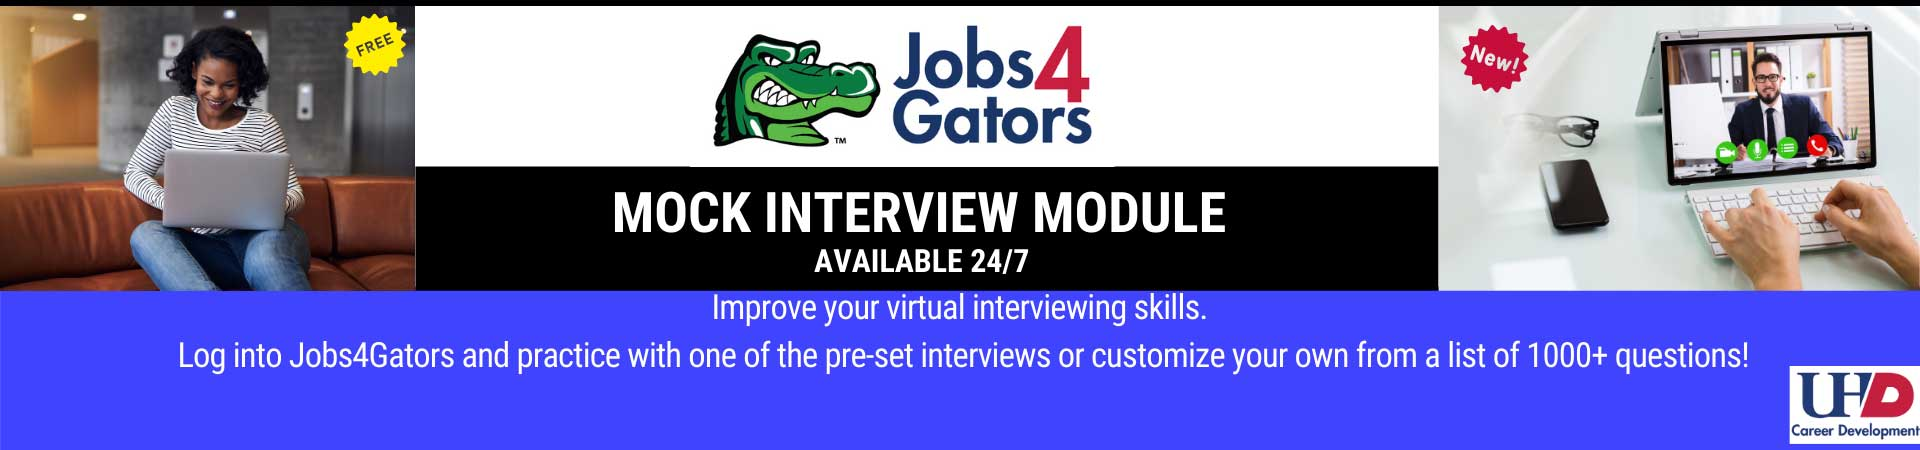 advertisement for Mock Interview Moldule available 24 hours a day, 7 days as week.